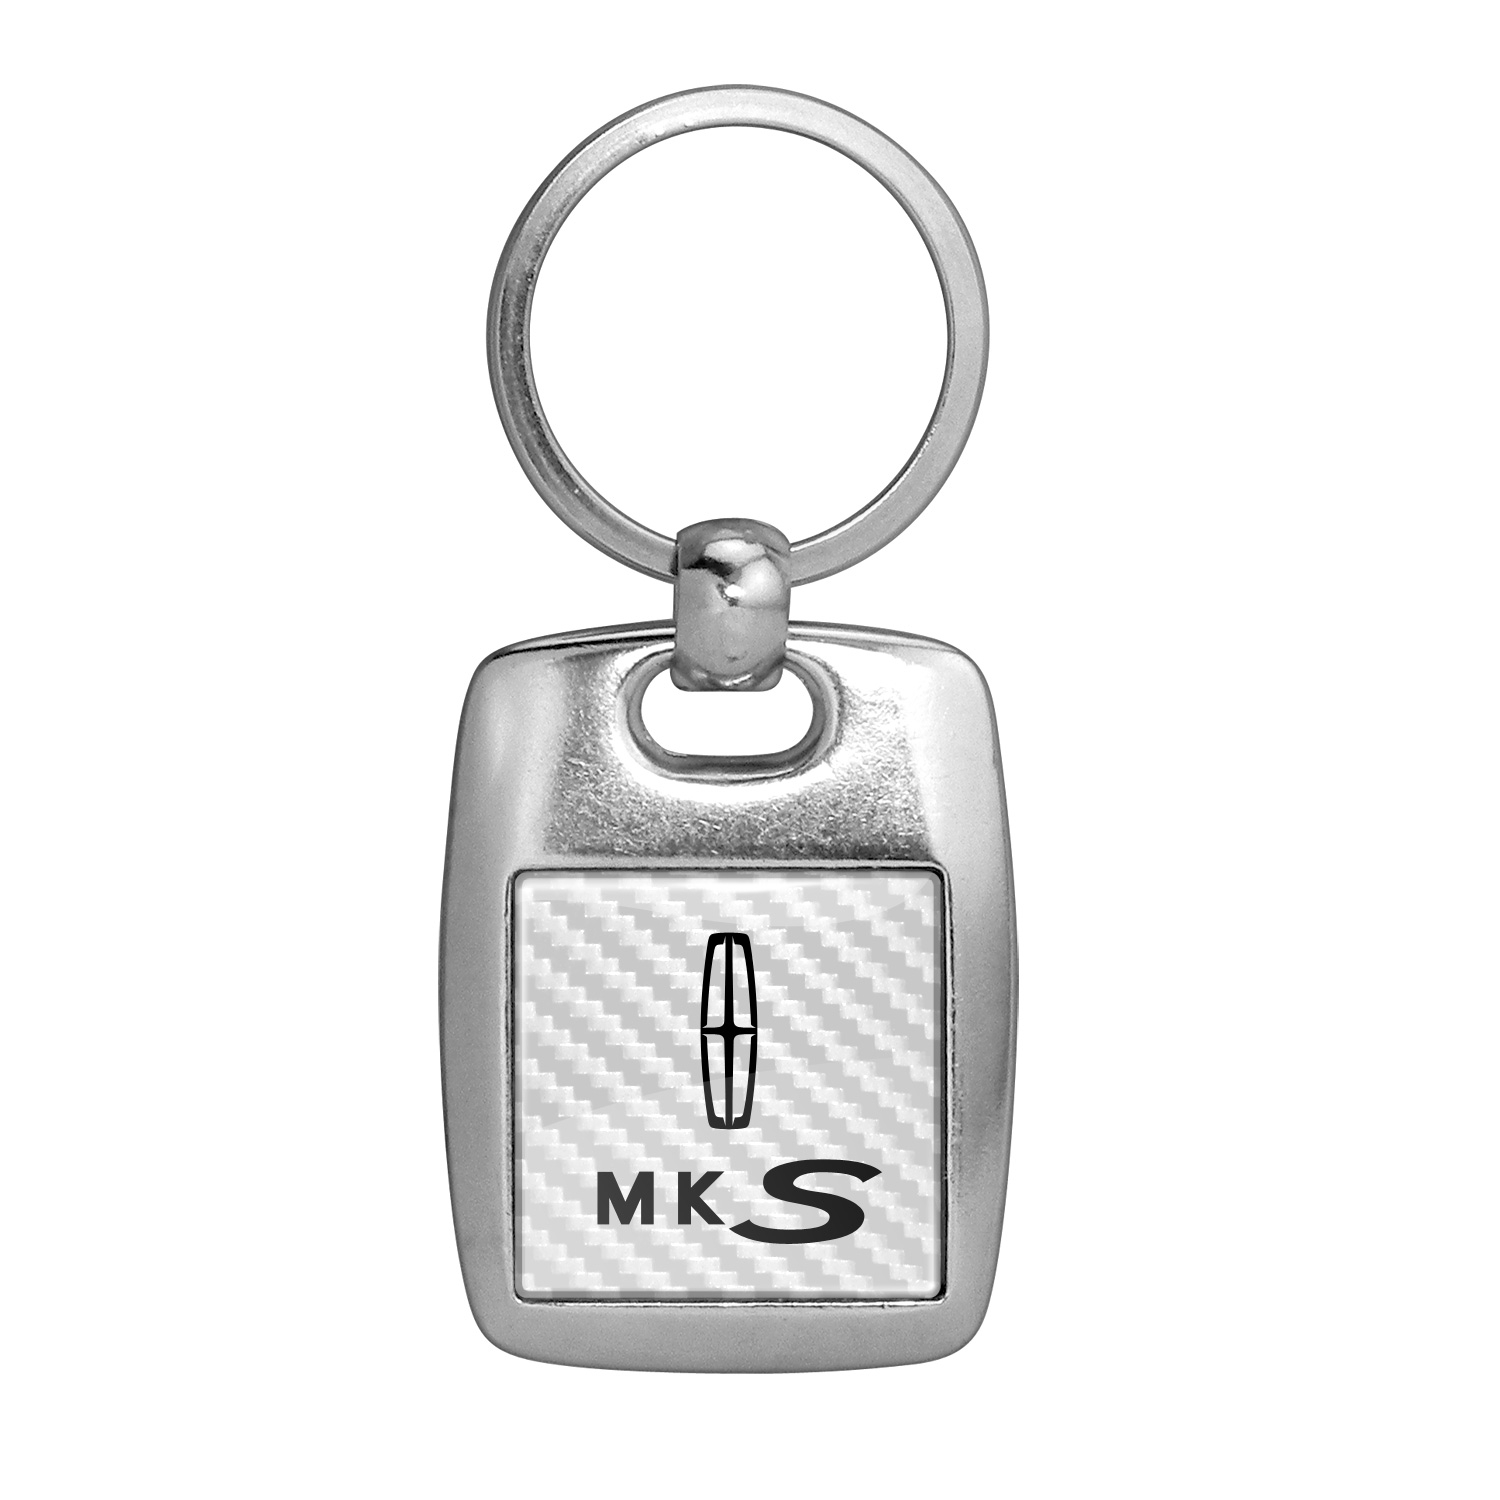 Lincoln MKS White Carbon Fiber Backing Brush Metal Key Chain